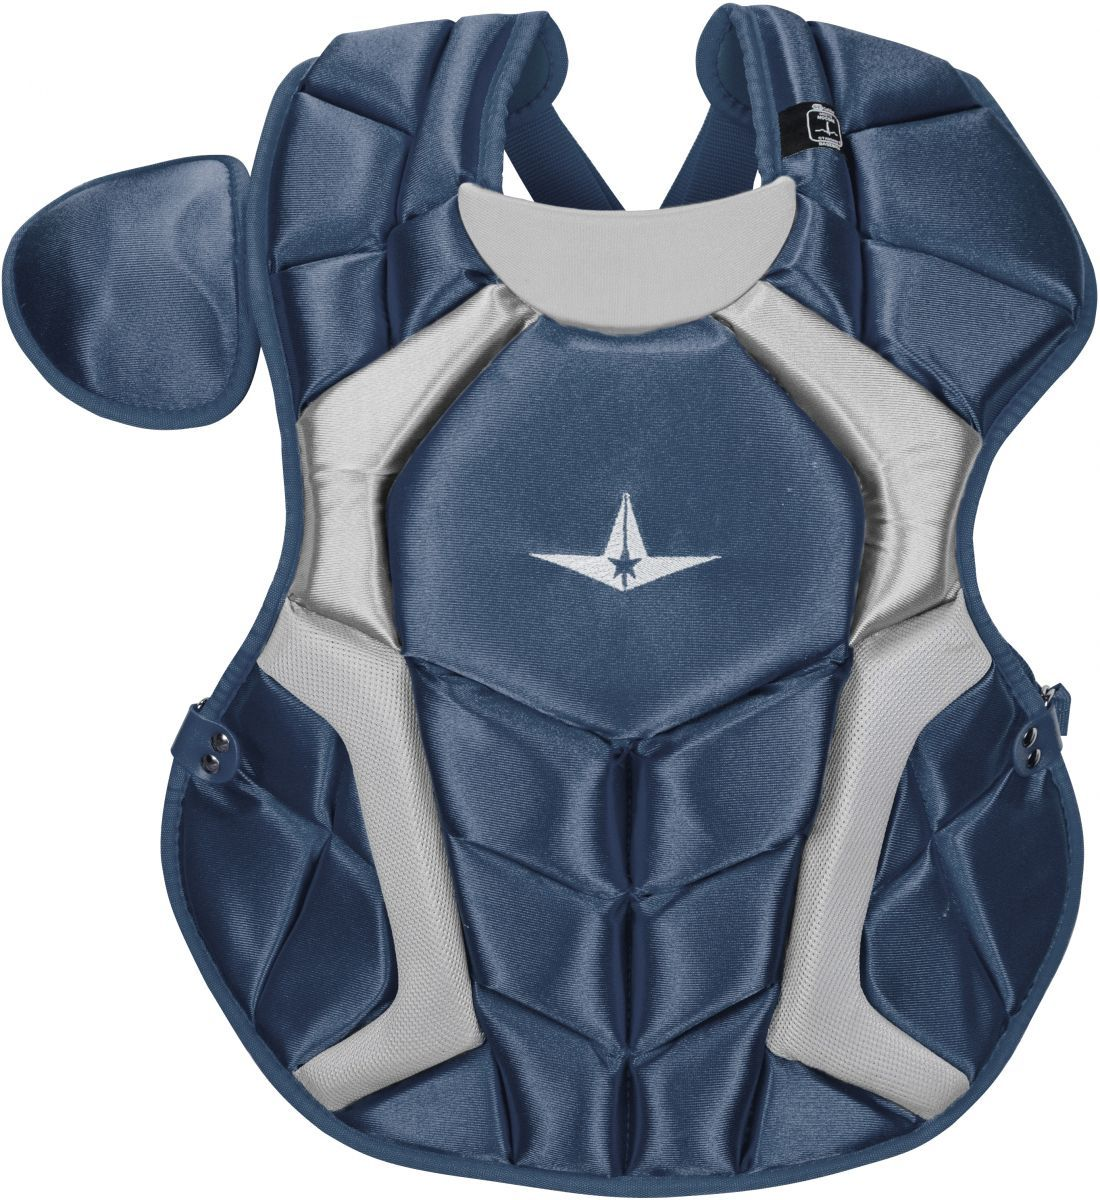 All Star Youth Player's Series Chest Protector